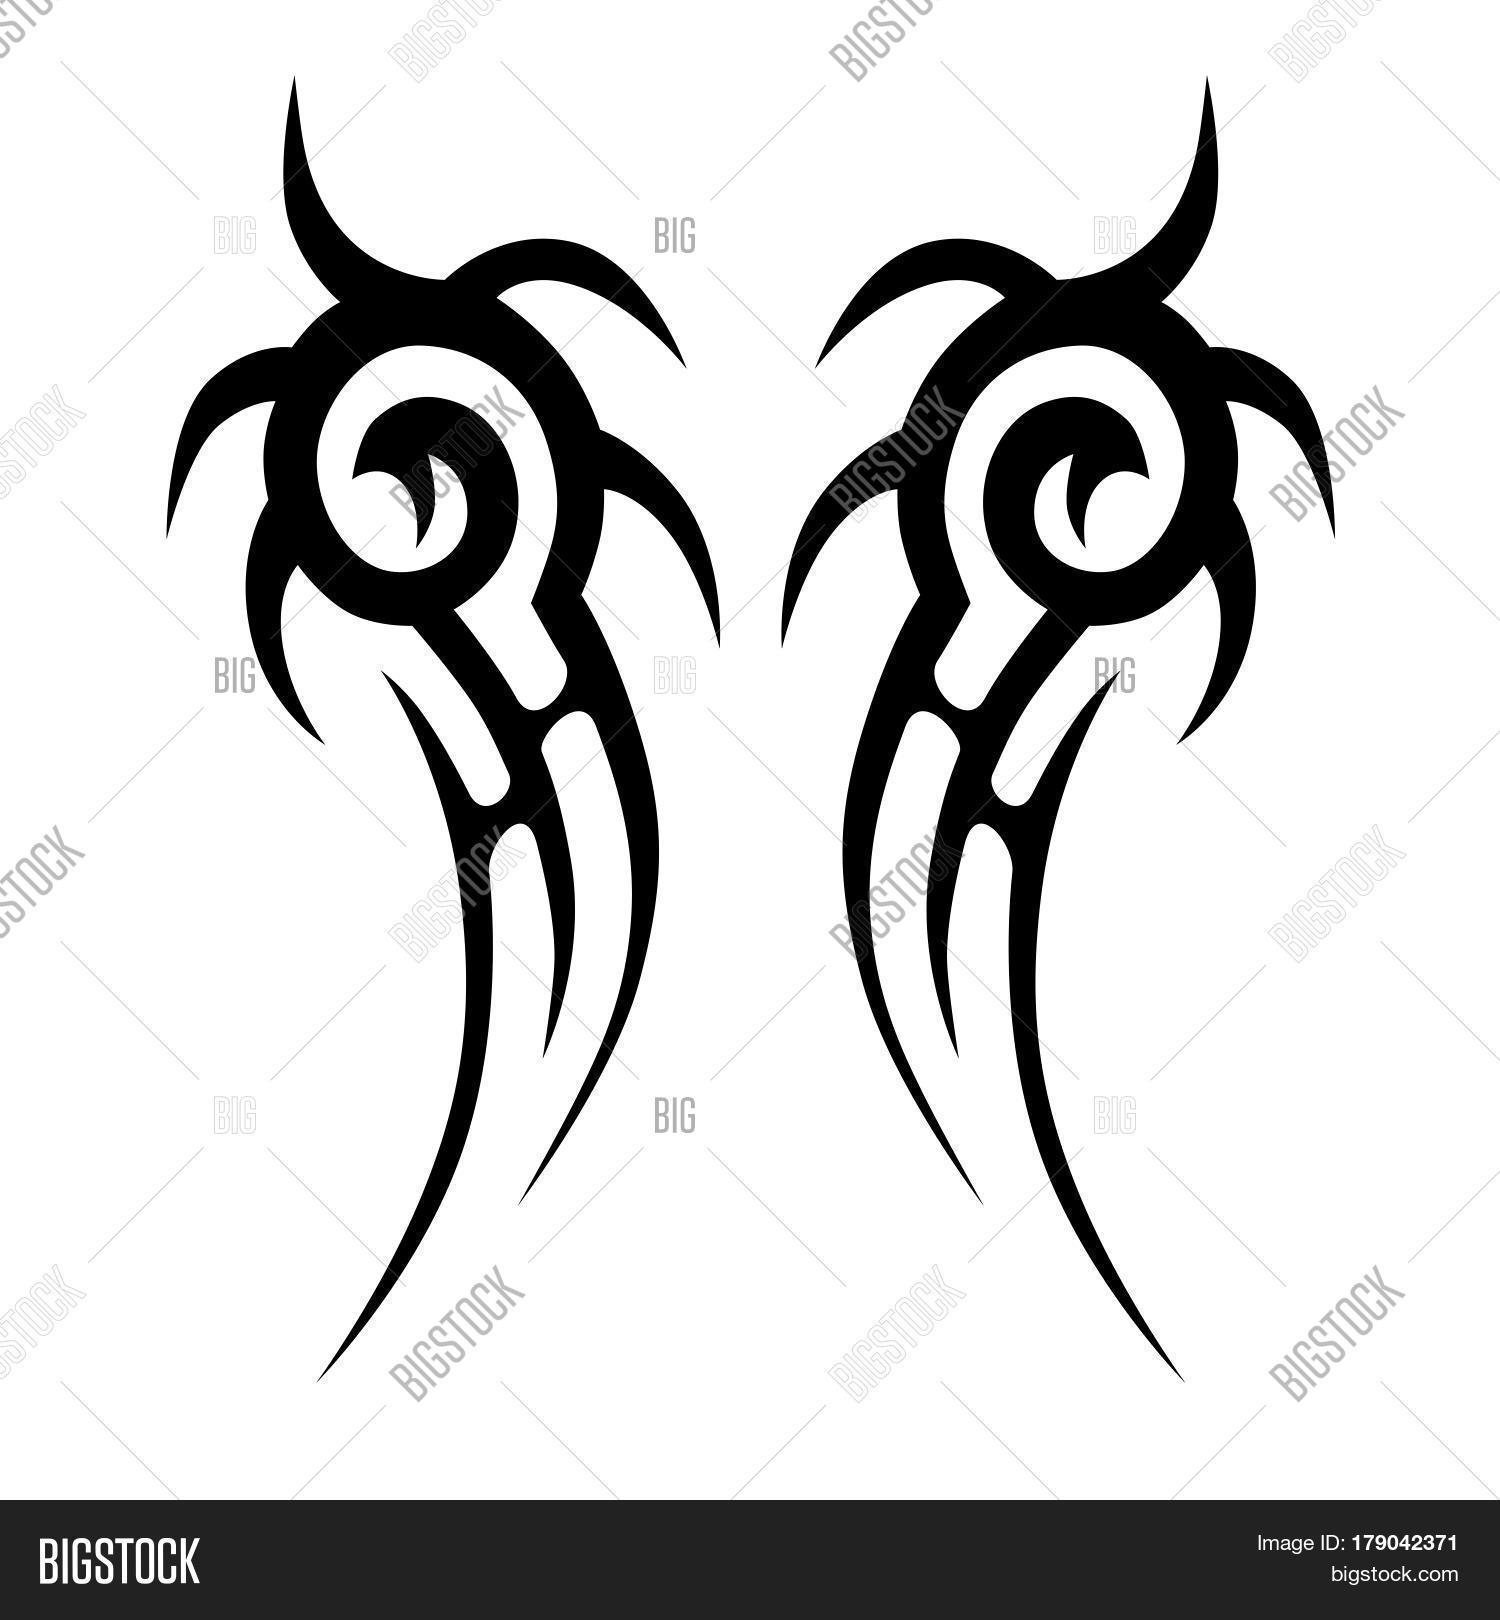 Tattoo Tribal Vector Photo Free Trial Bigstock with regard to dimensions 1500 X 1620